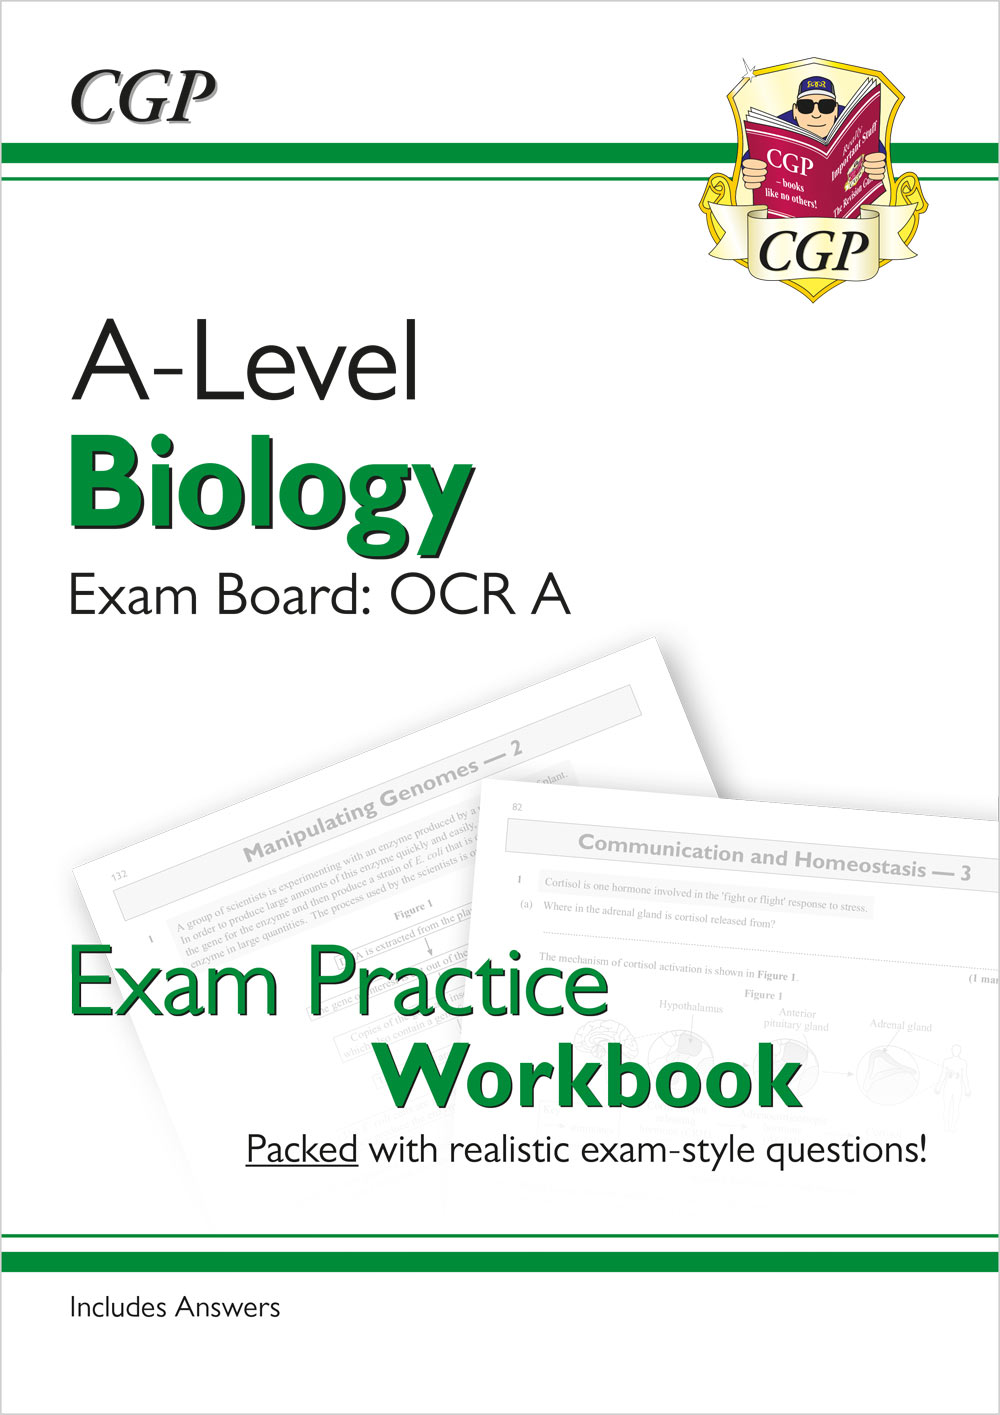 BRAQ71 - New A-Level Biology: OCR A Year 1 & 2 Exam Practice Workbook - includes Answers